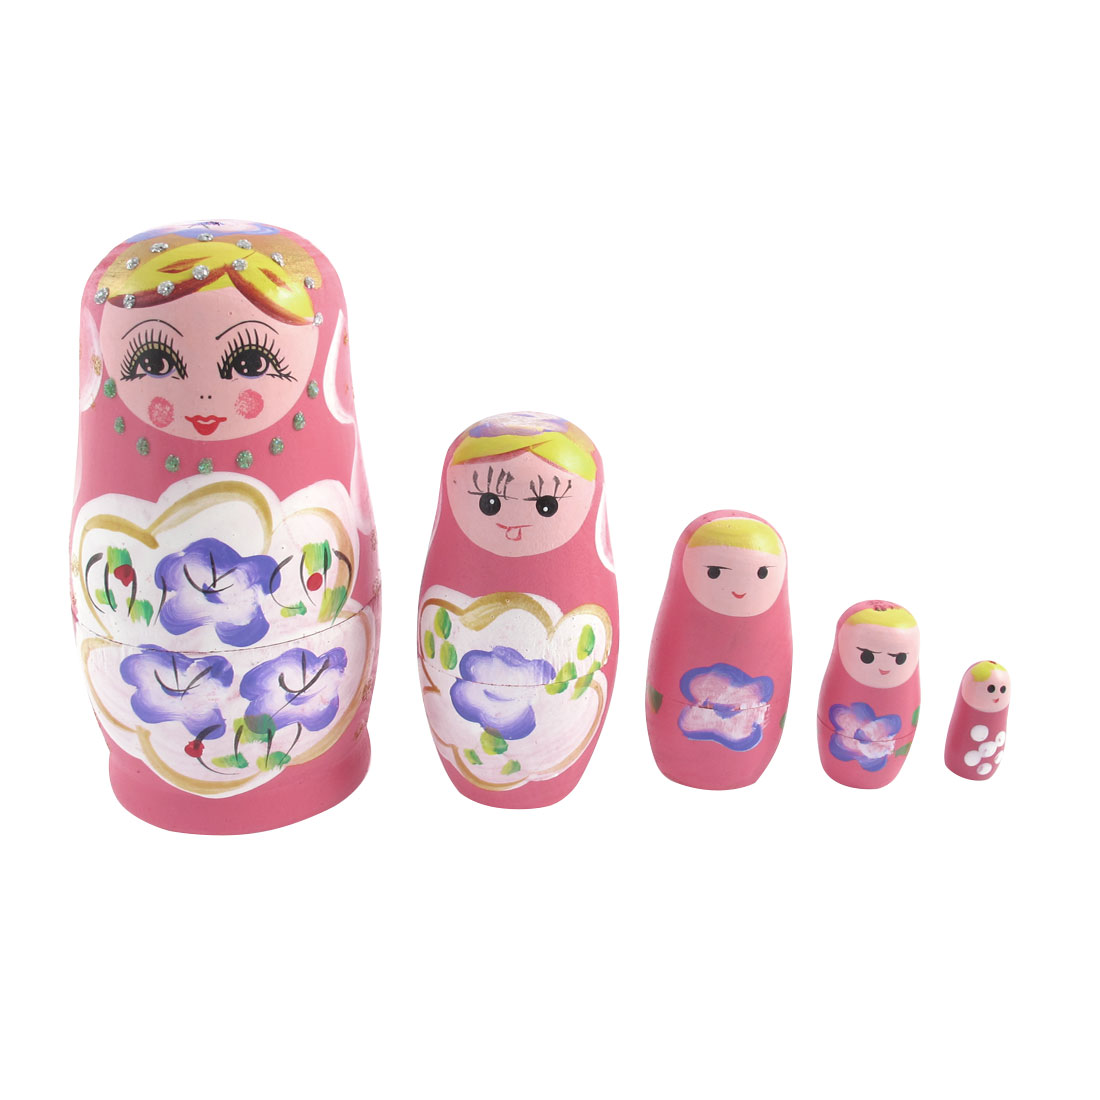 Girl Gift Wooden Russian Style Matryoshka Stacking Nesting Doll Pink 5 in 1